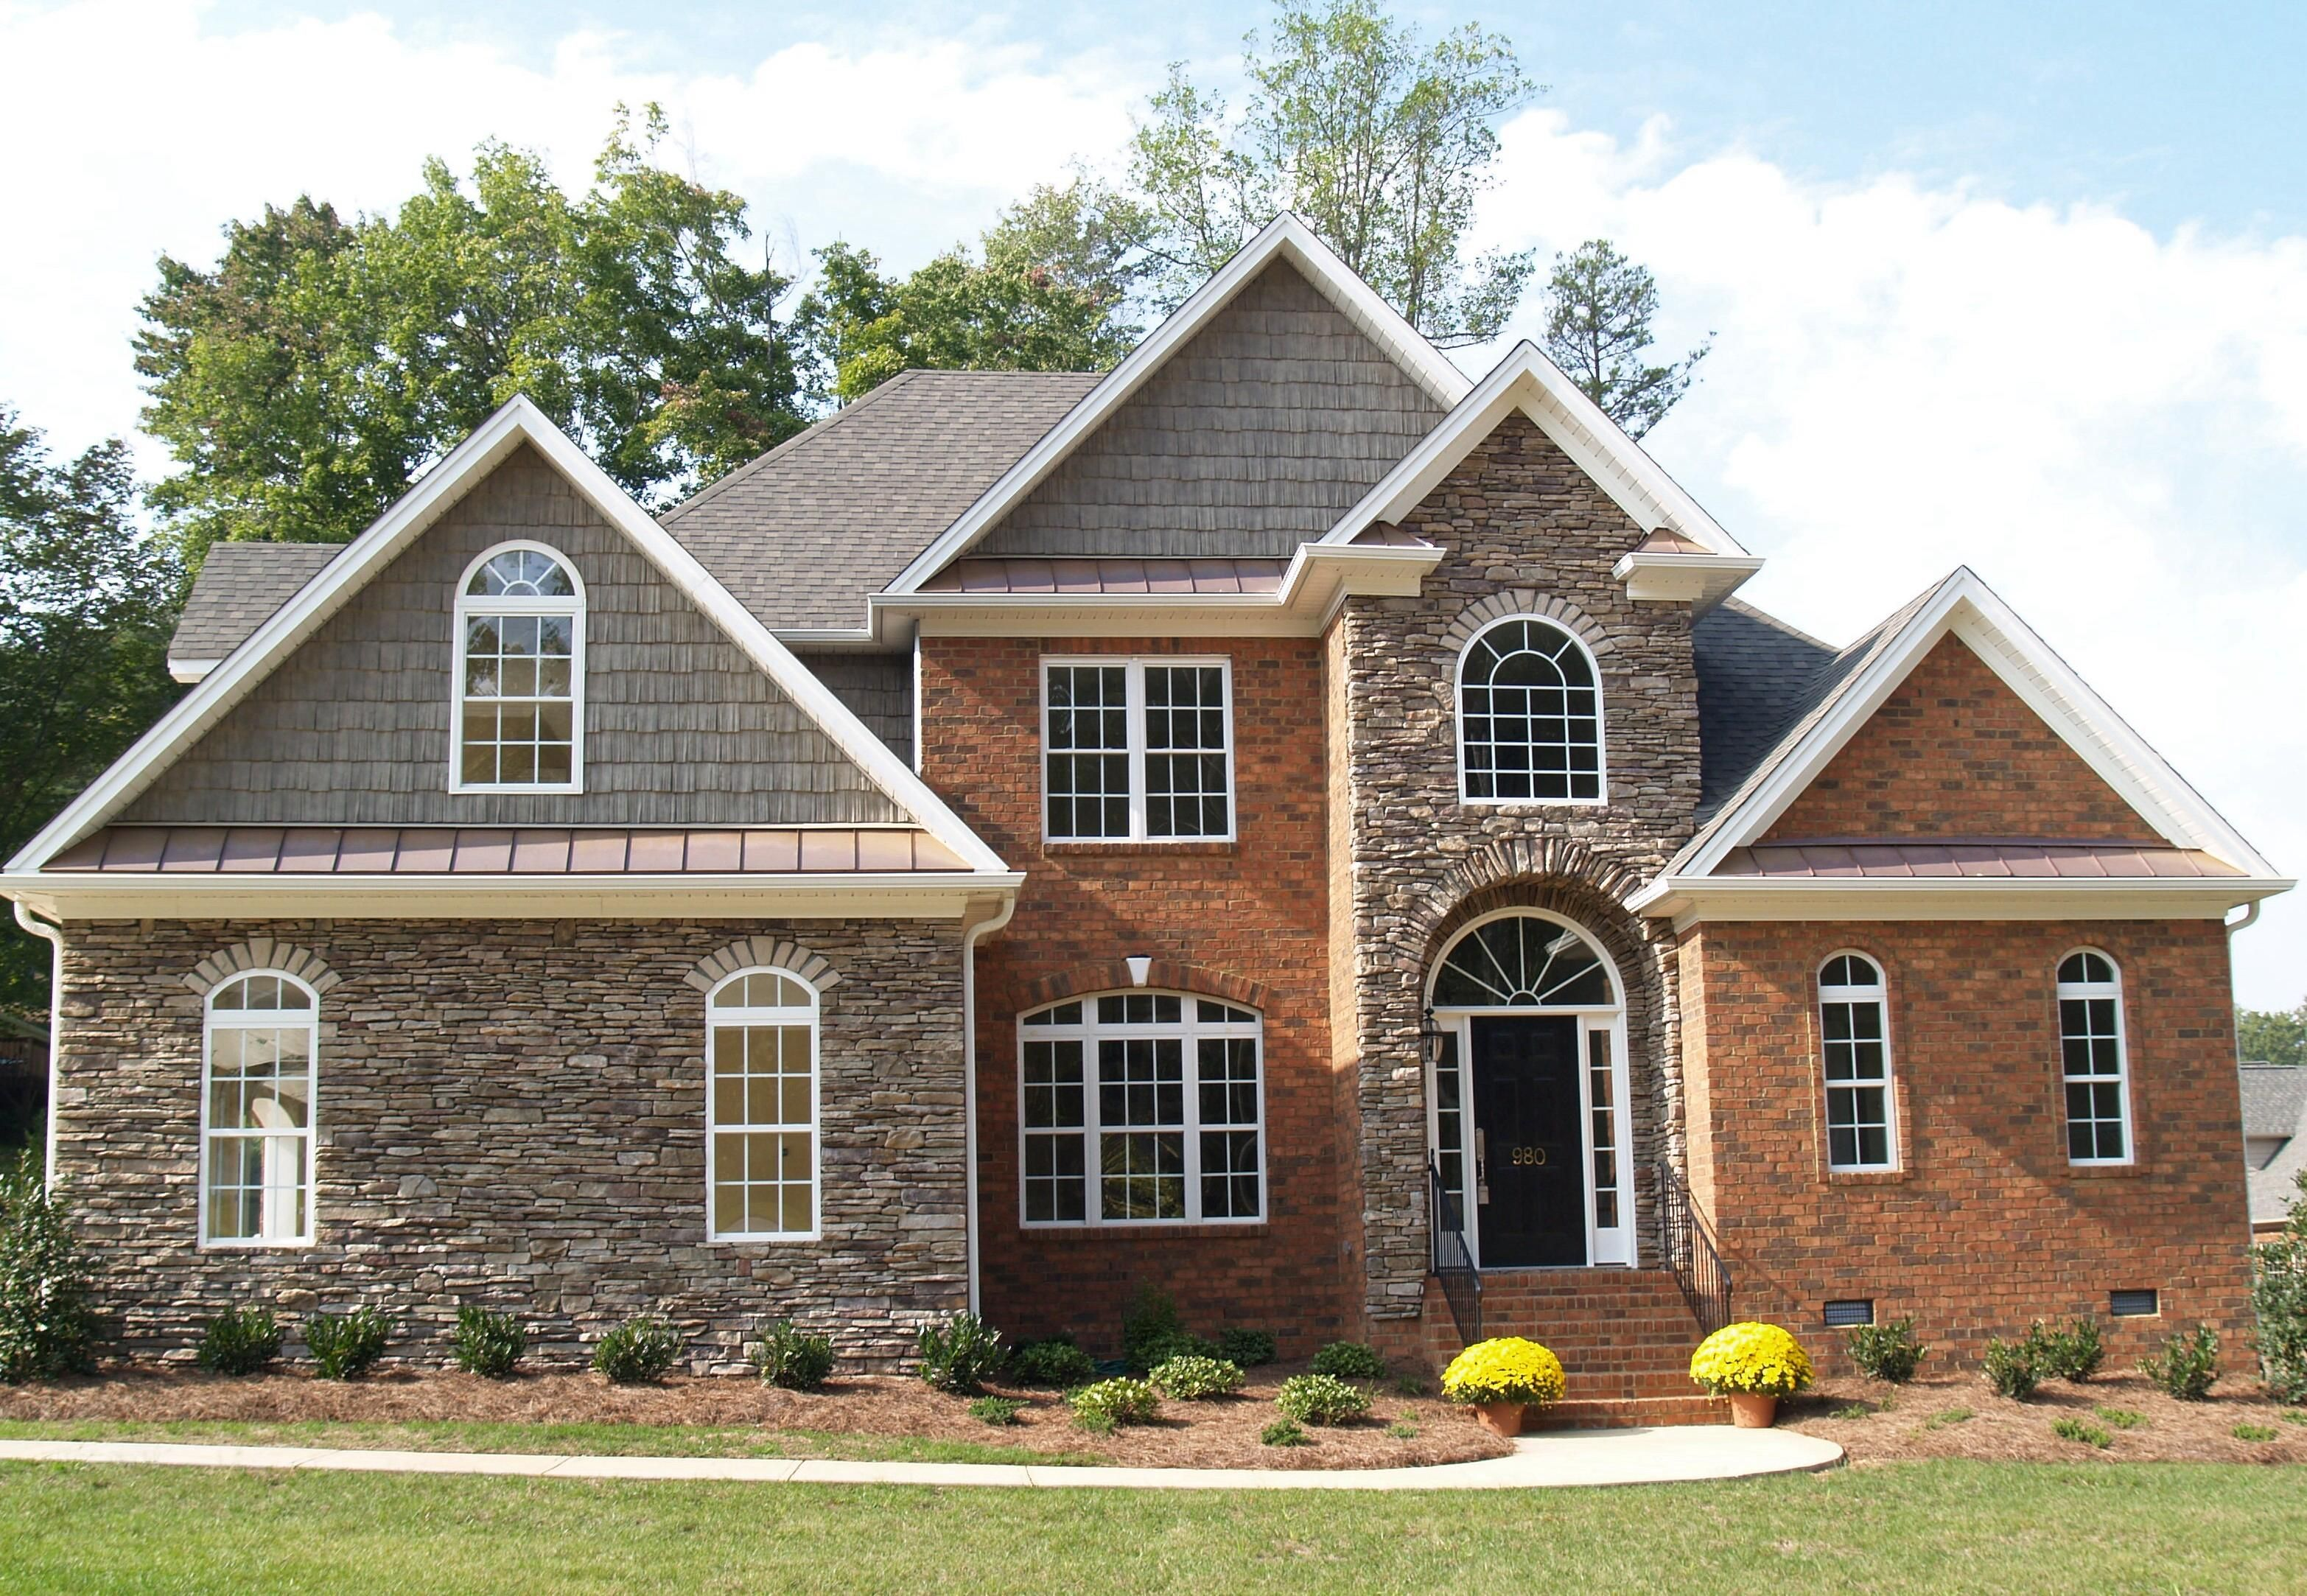 Brick And Stone Exterior Combinations Accents For Red Brick Homes Mixed Media Using Brick And